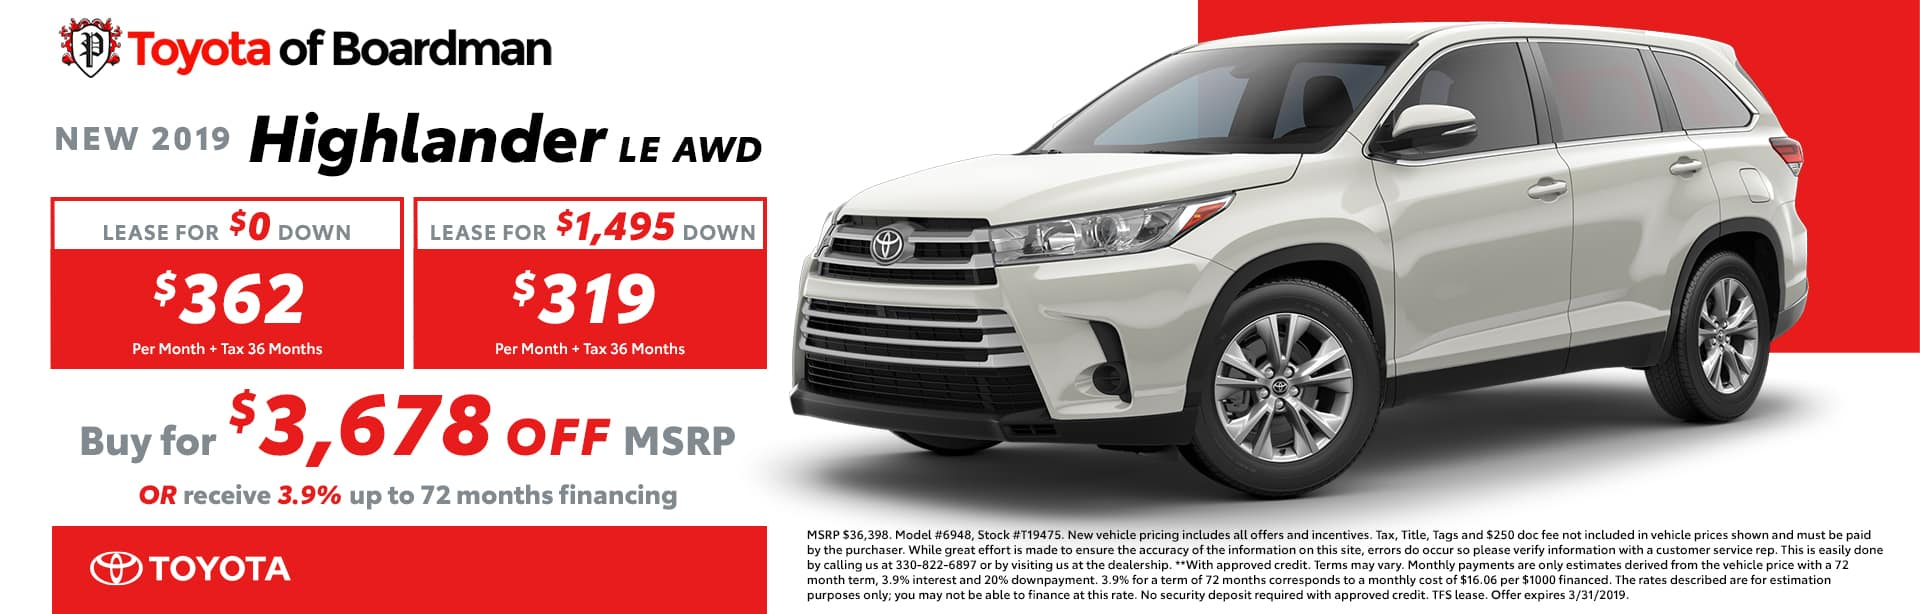 March Special on the 2019 Toyota Highlander LE